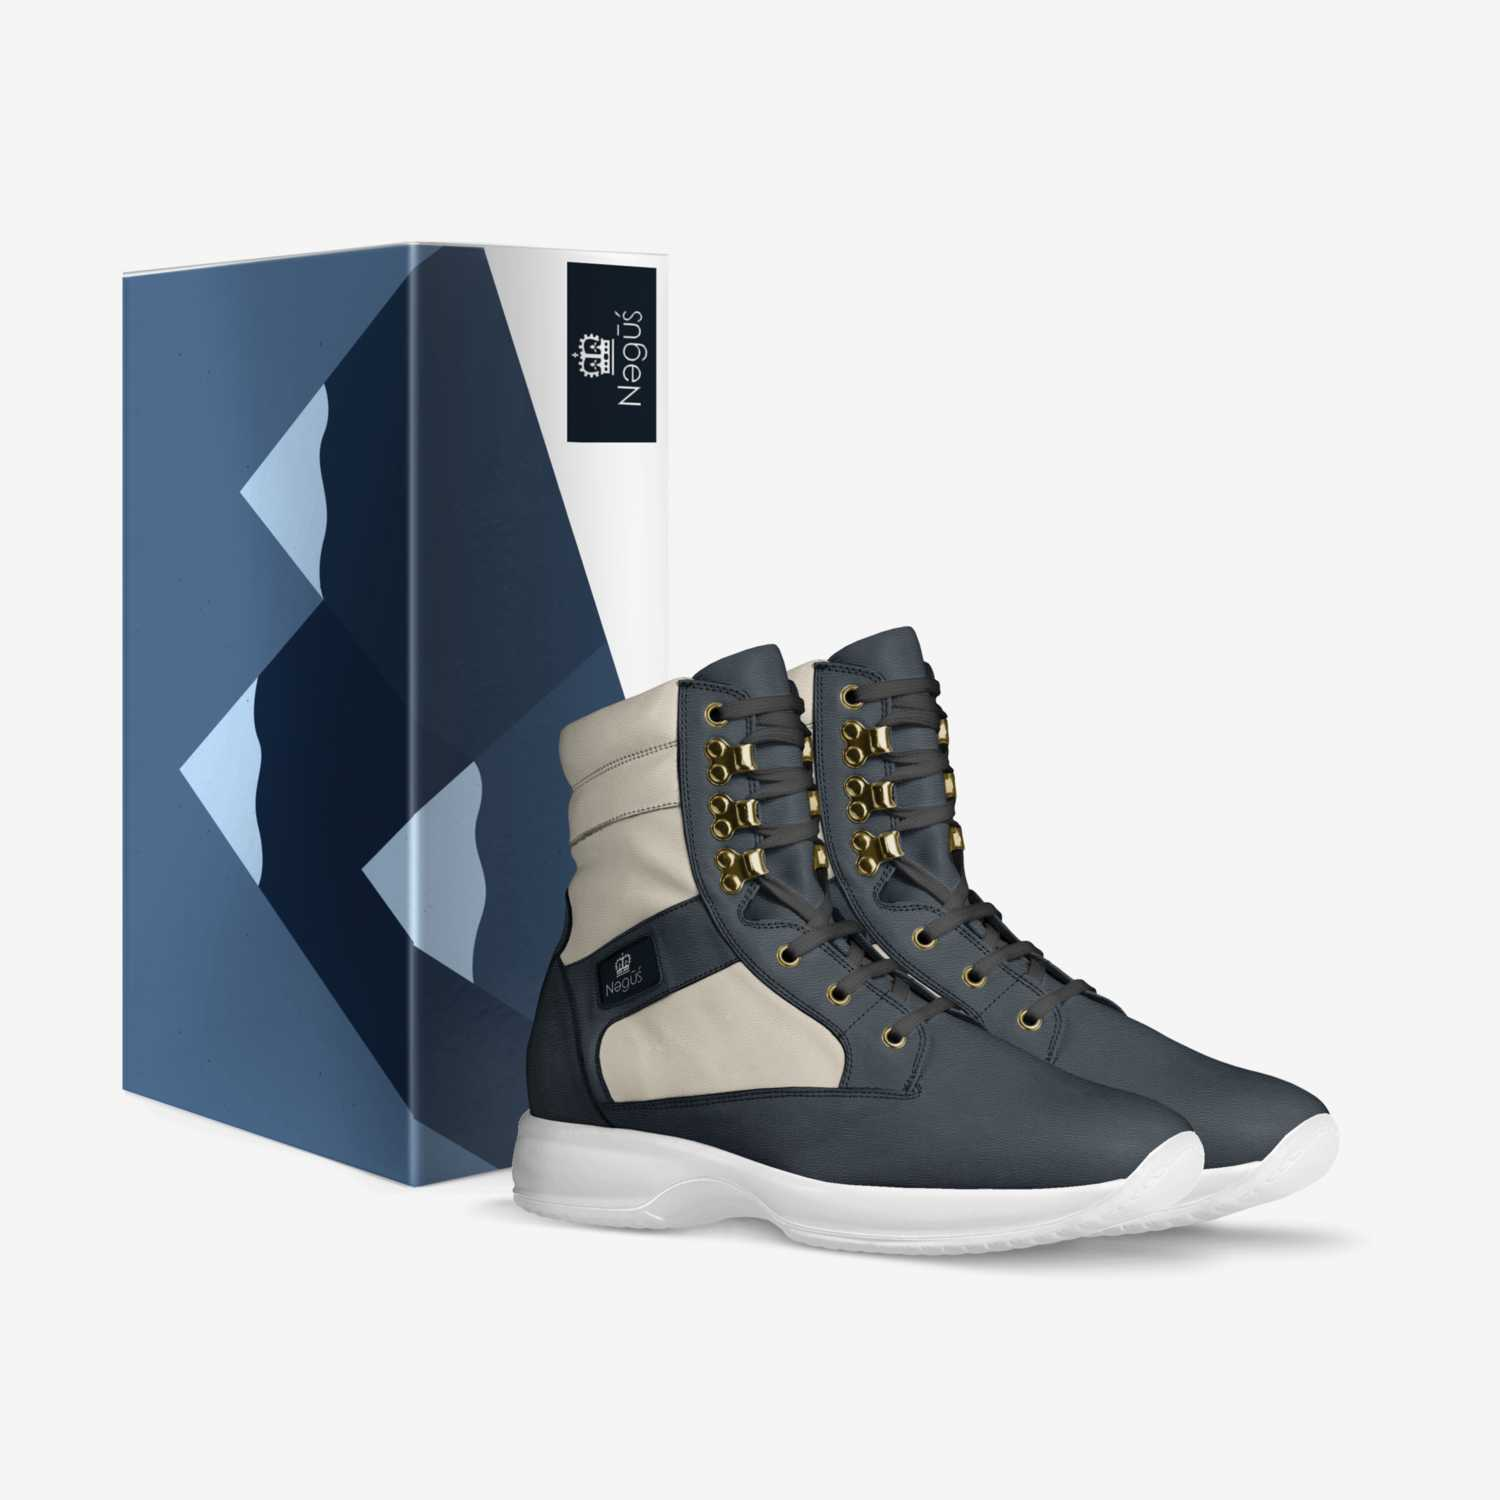 Negus custom made in Italy shoes by Negus Mills | Box view